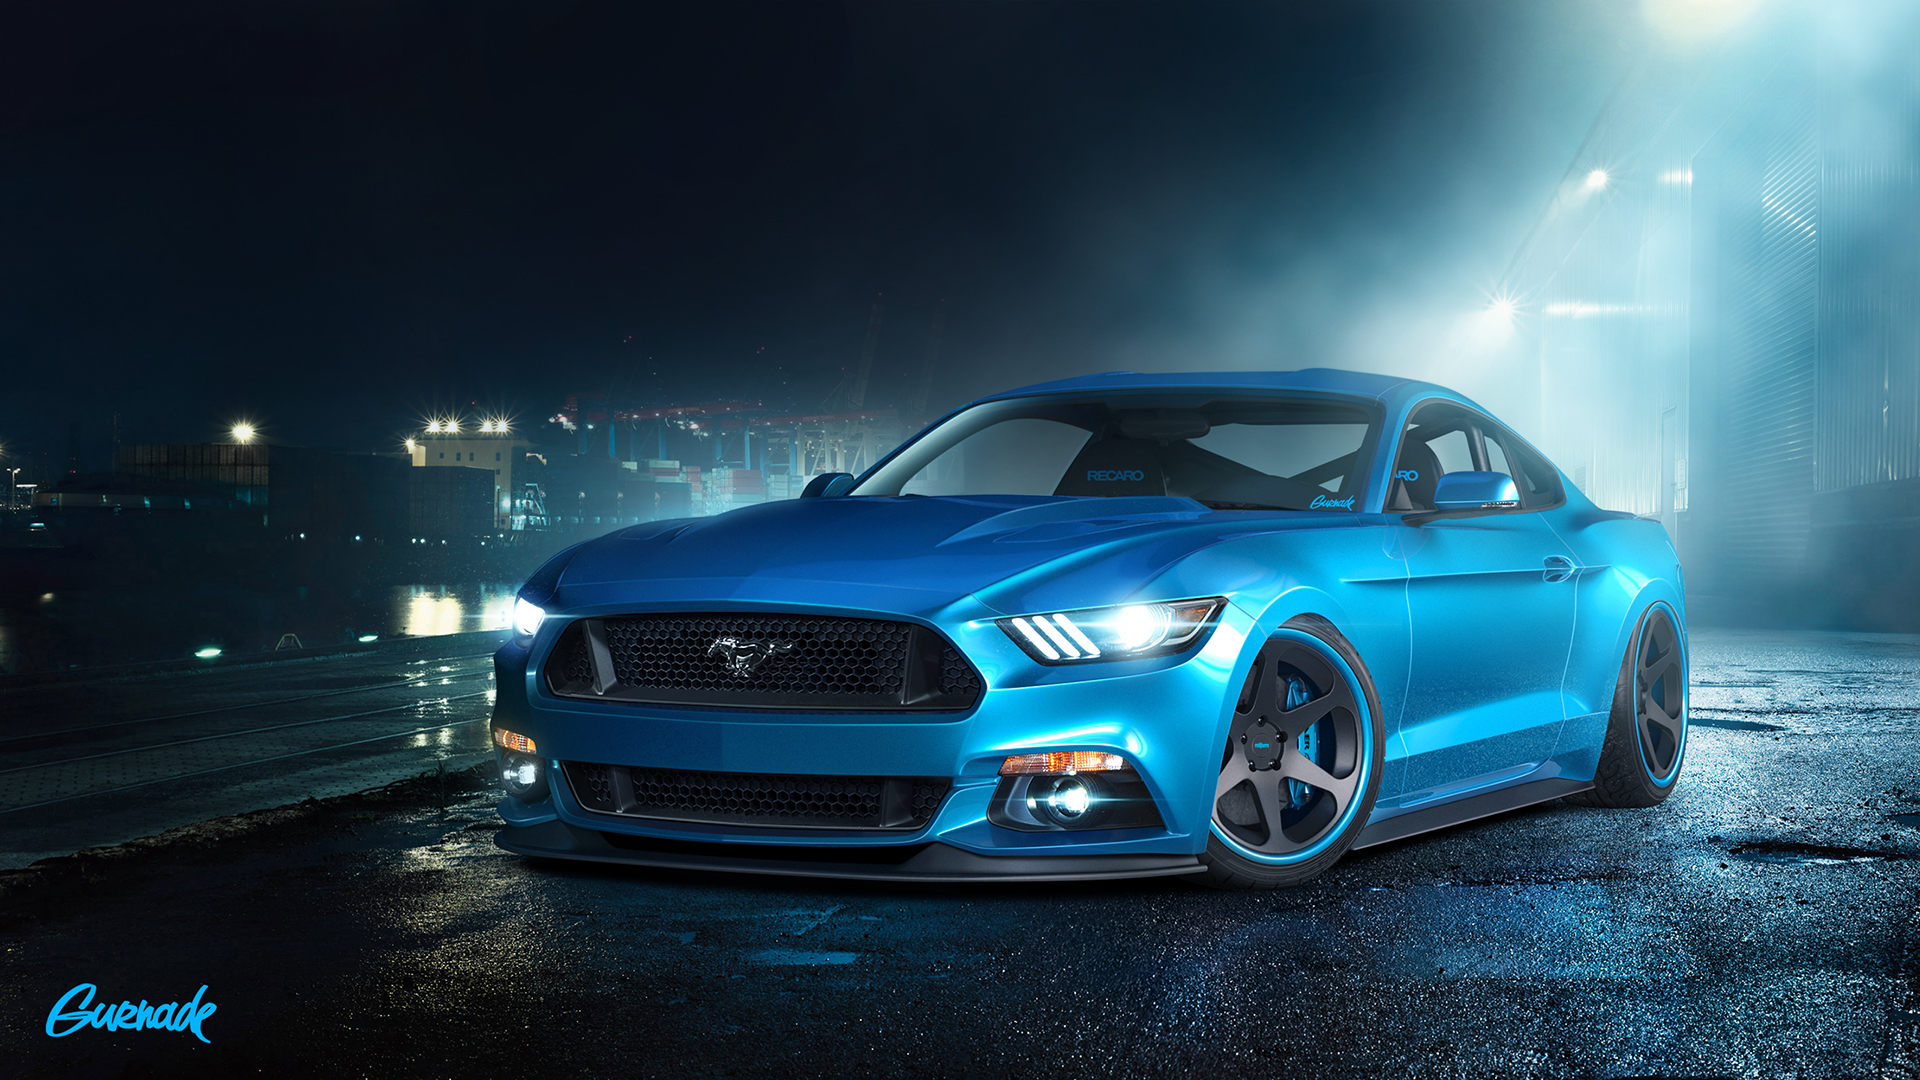 2015 Ford Mustang Gt Wallpaper Hd Car Wallpapers Id 4974